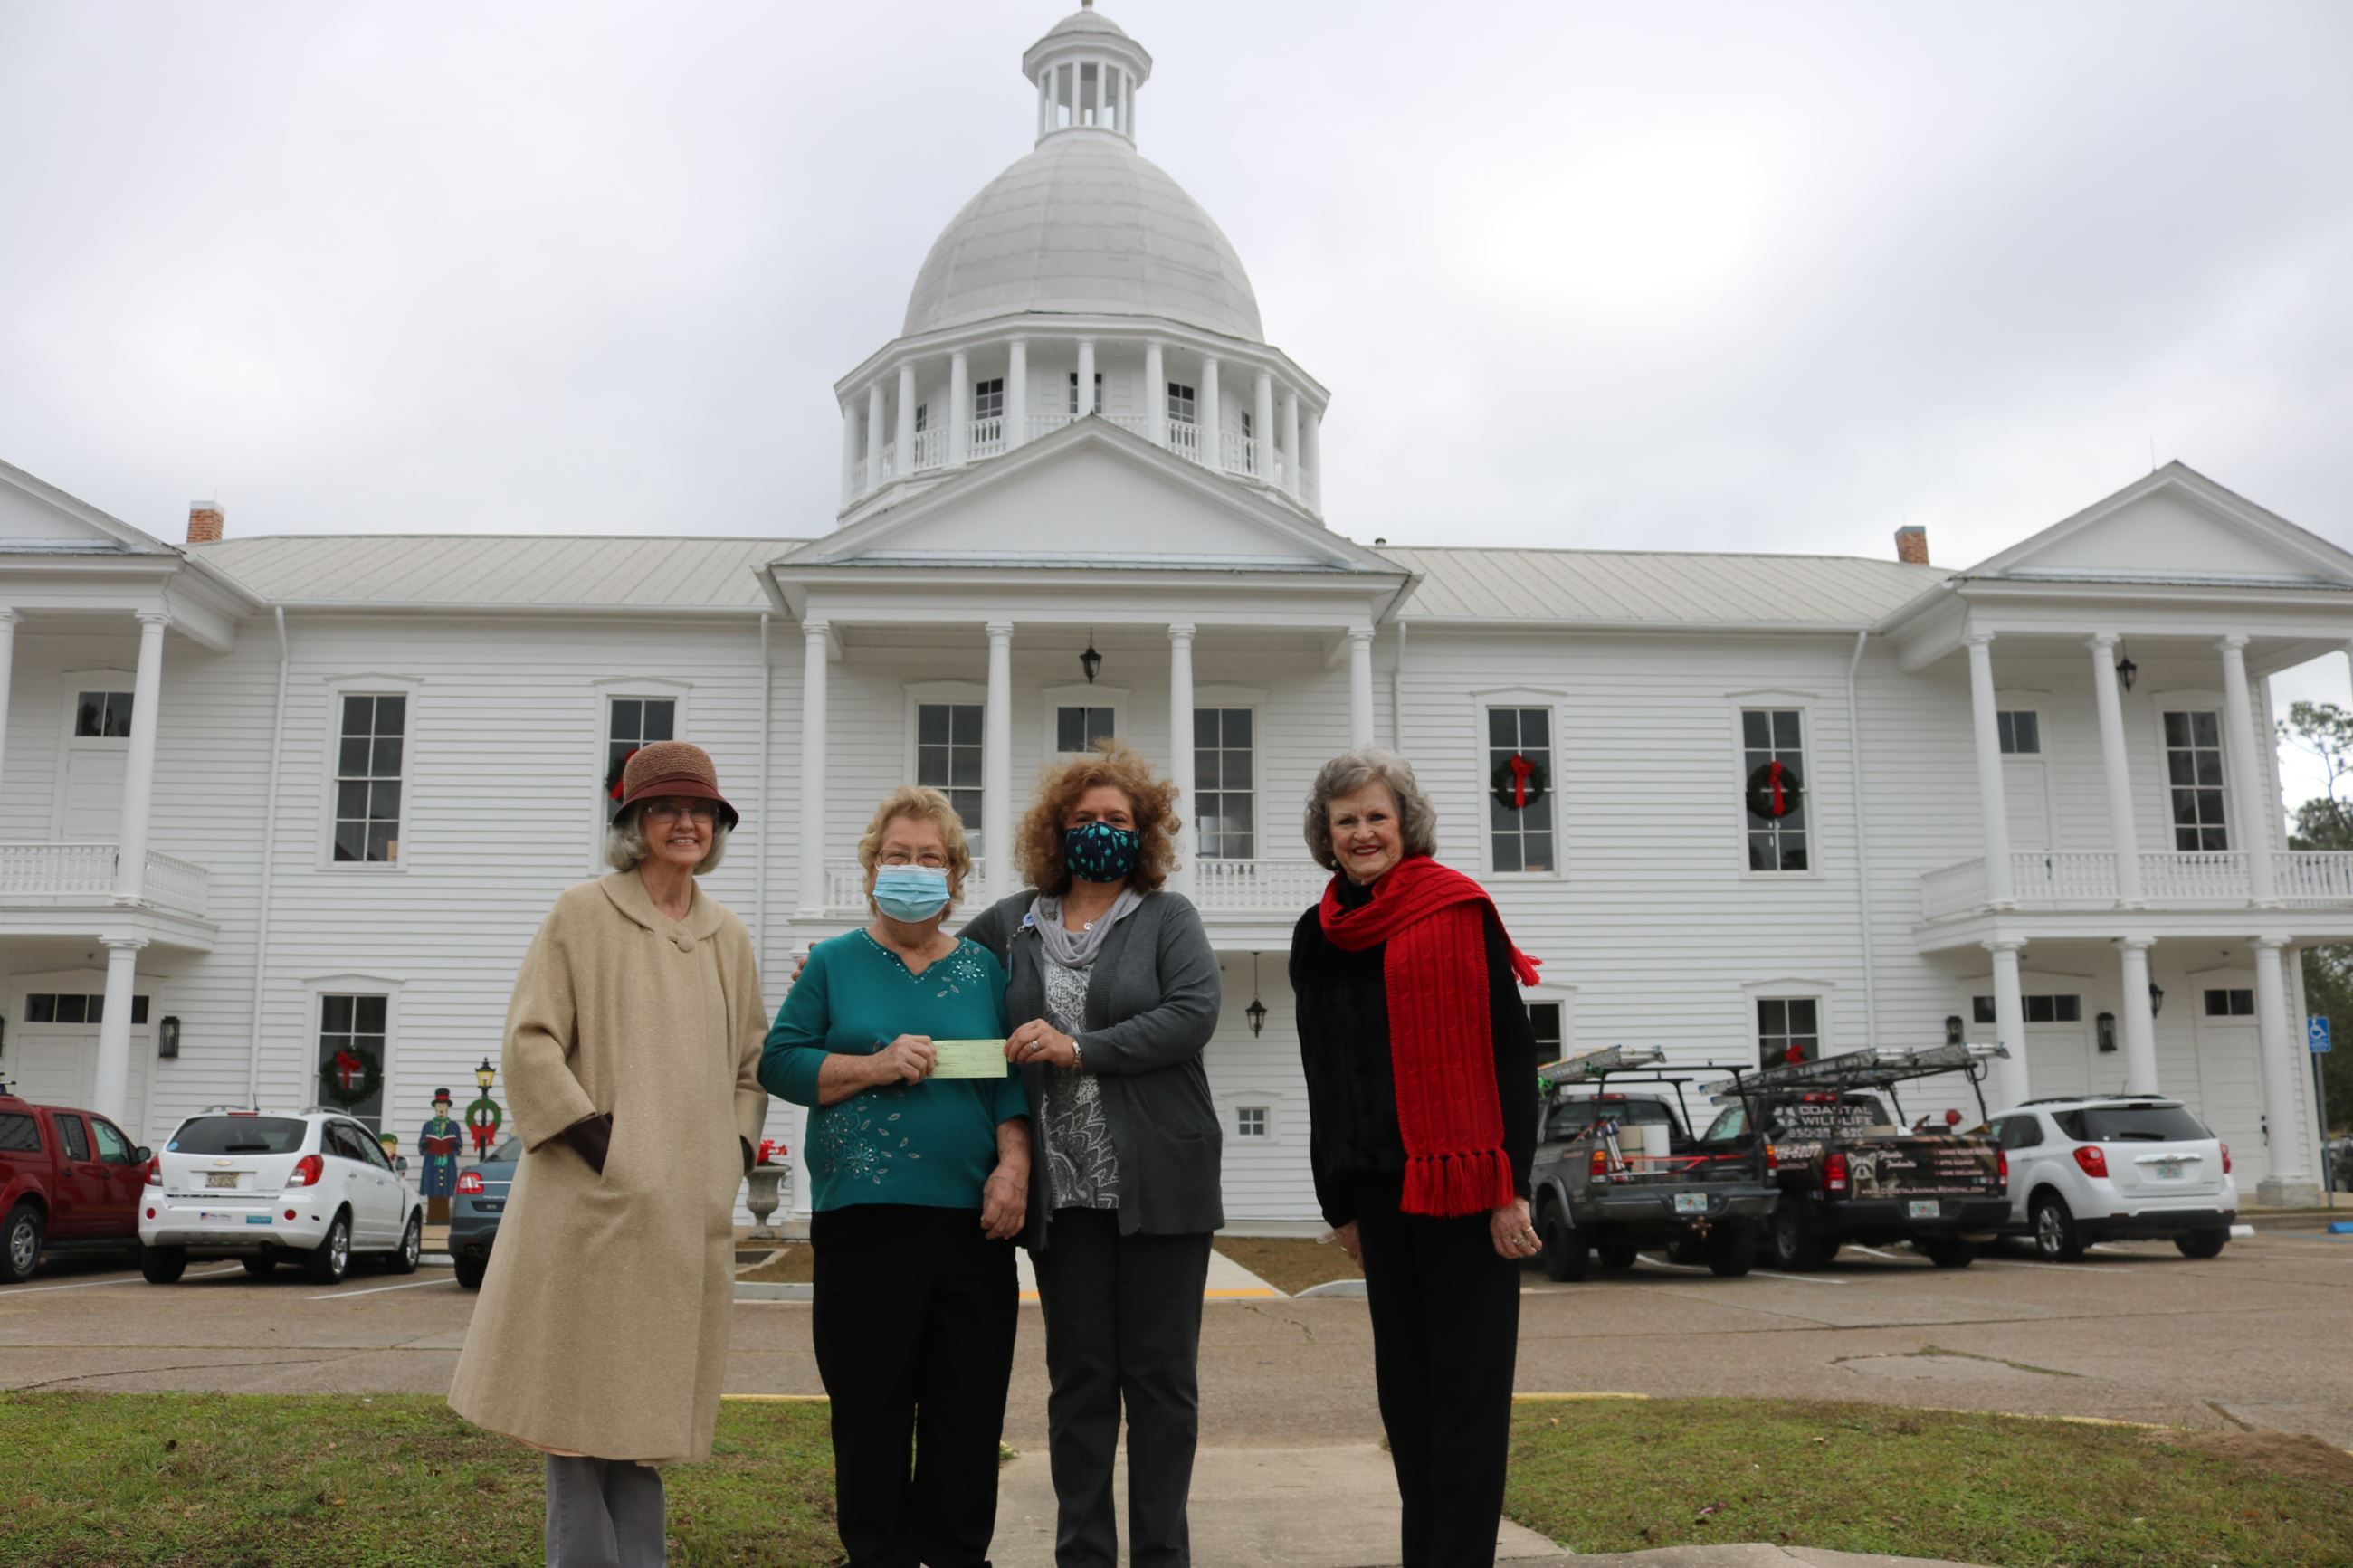 Four ladies in front a large historic building where one is presenting a check to another.